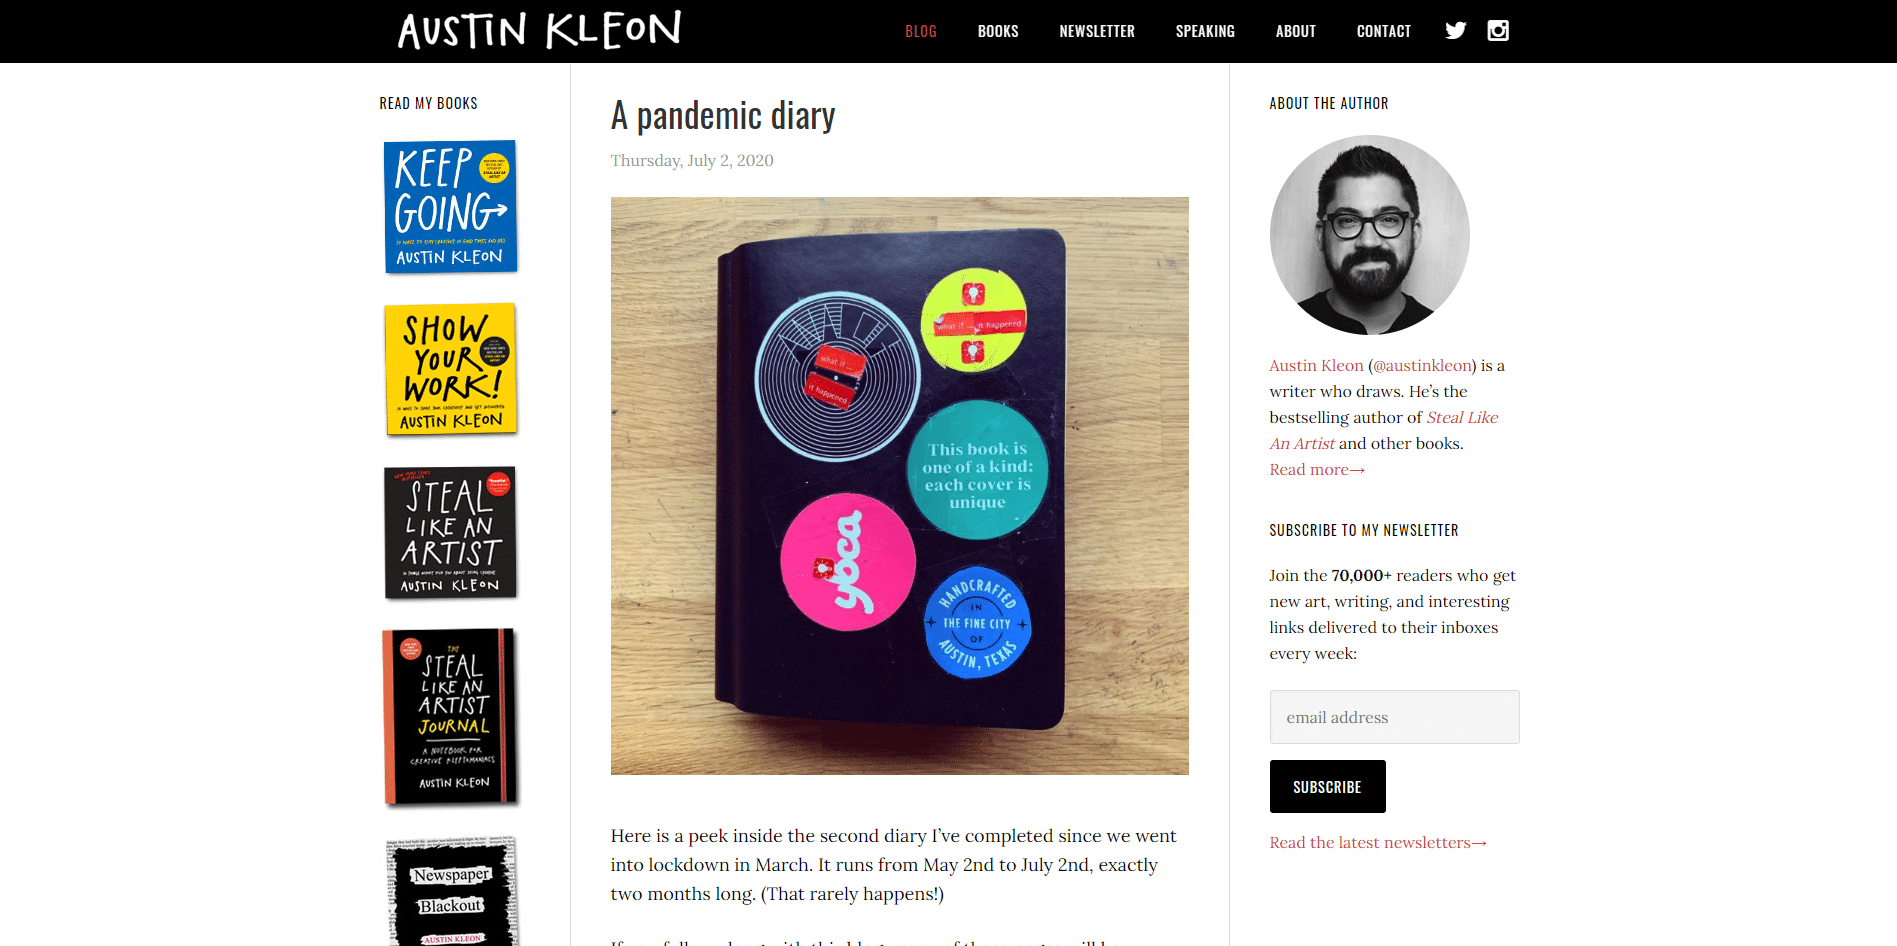 austin kleon website